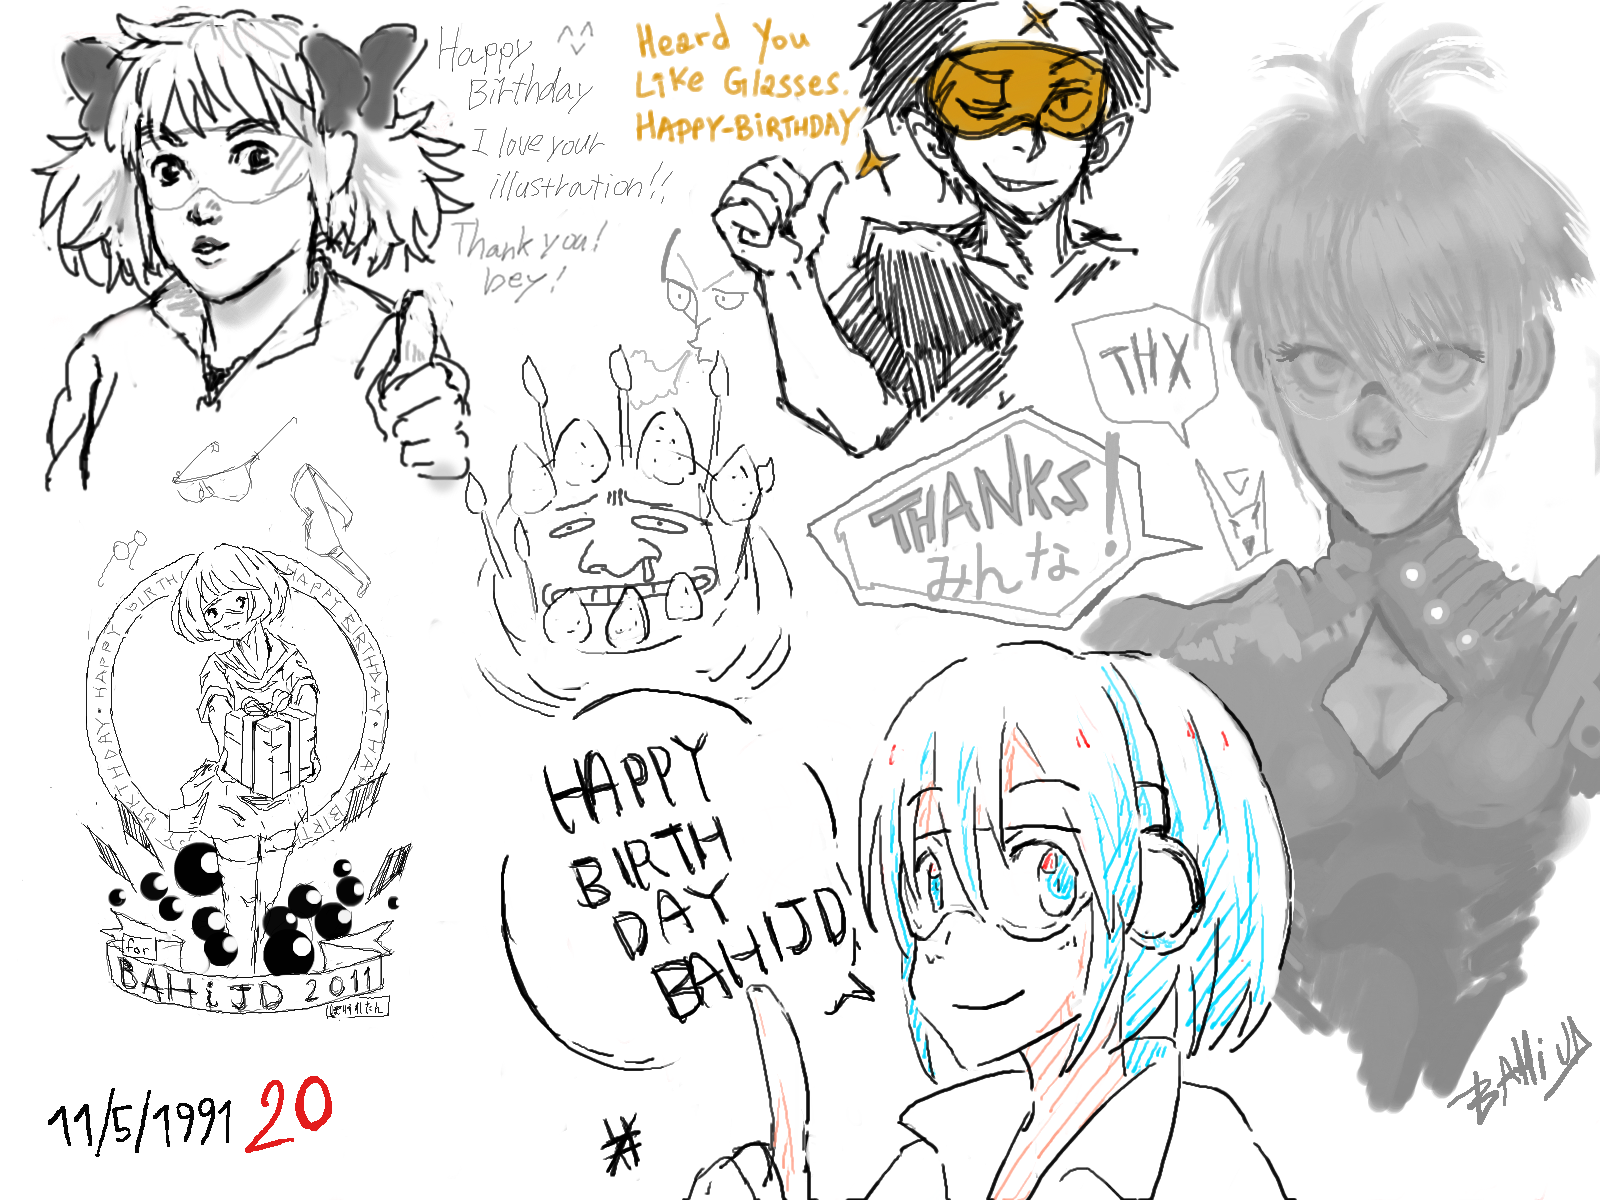 Bahi JD pixiv chat birthday 2011